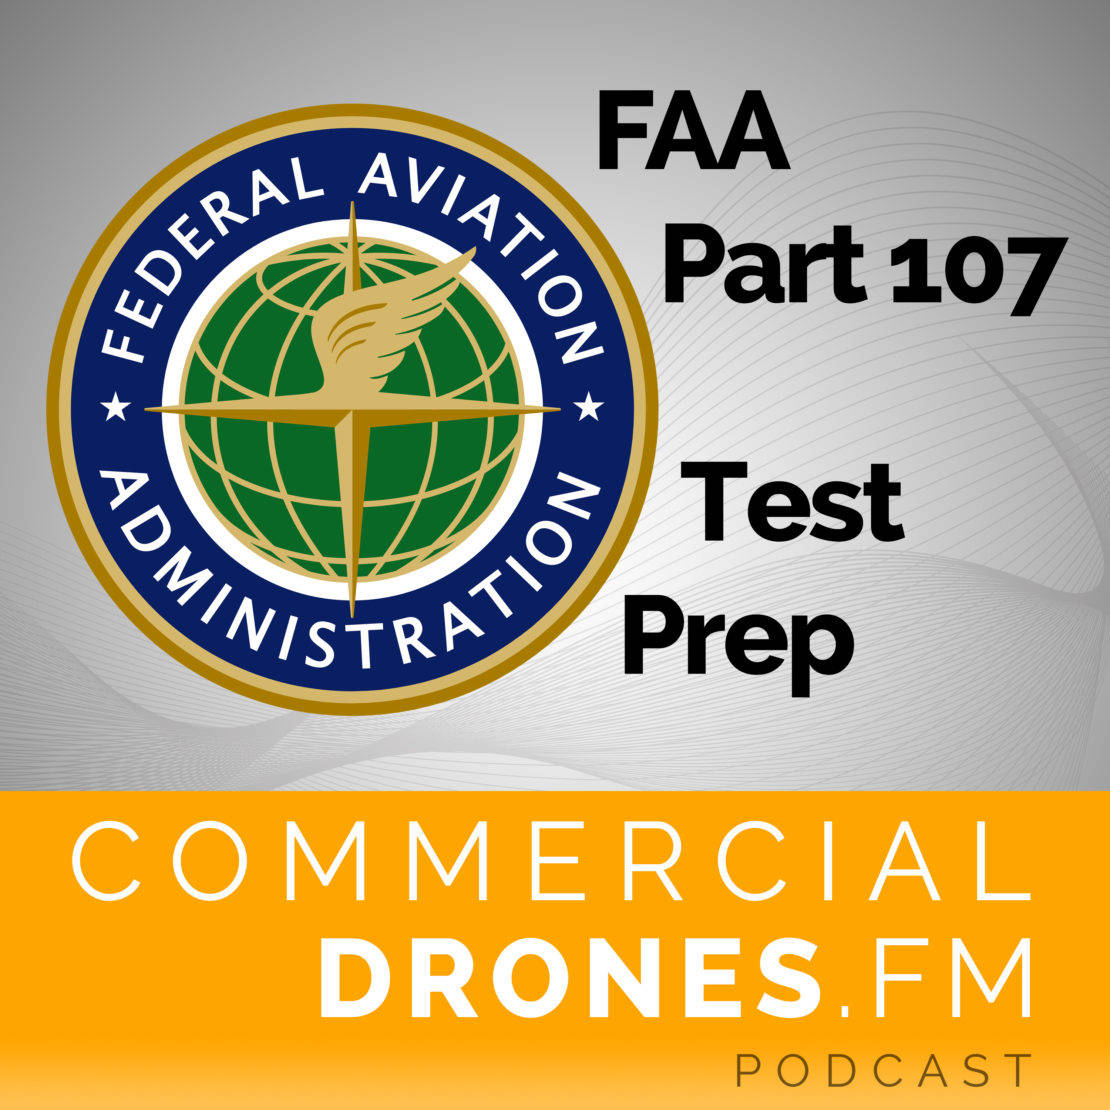 FAA Part 107 Study Guide and Test Prep for Drone Pilots